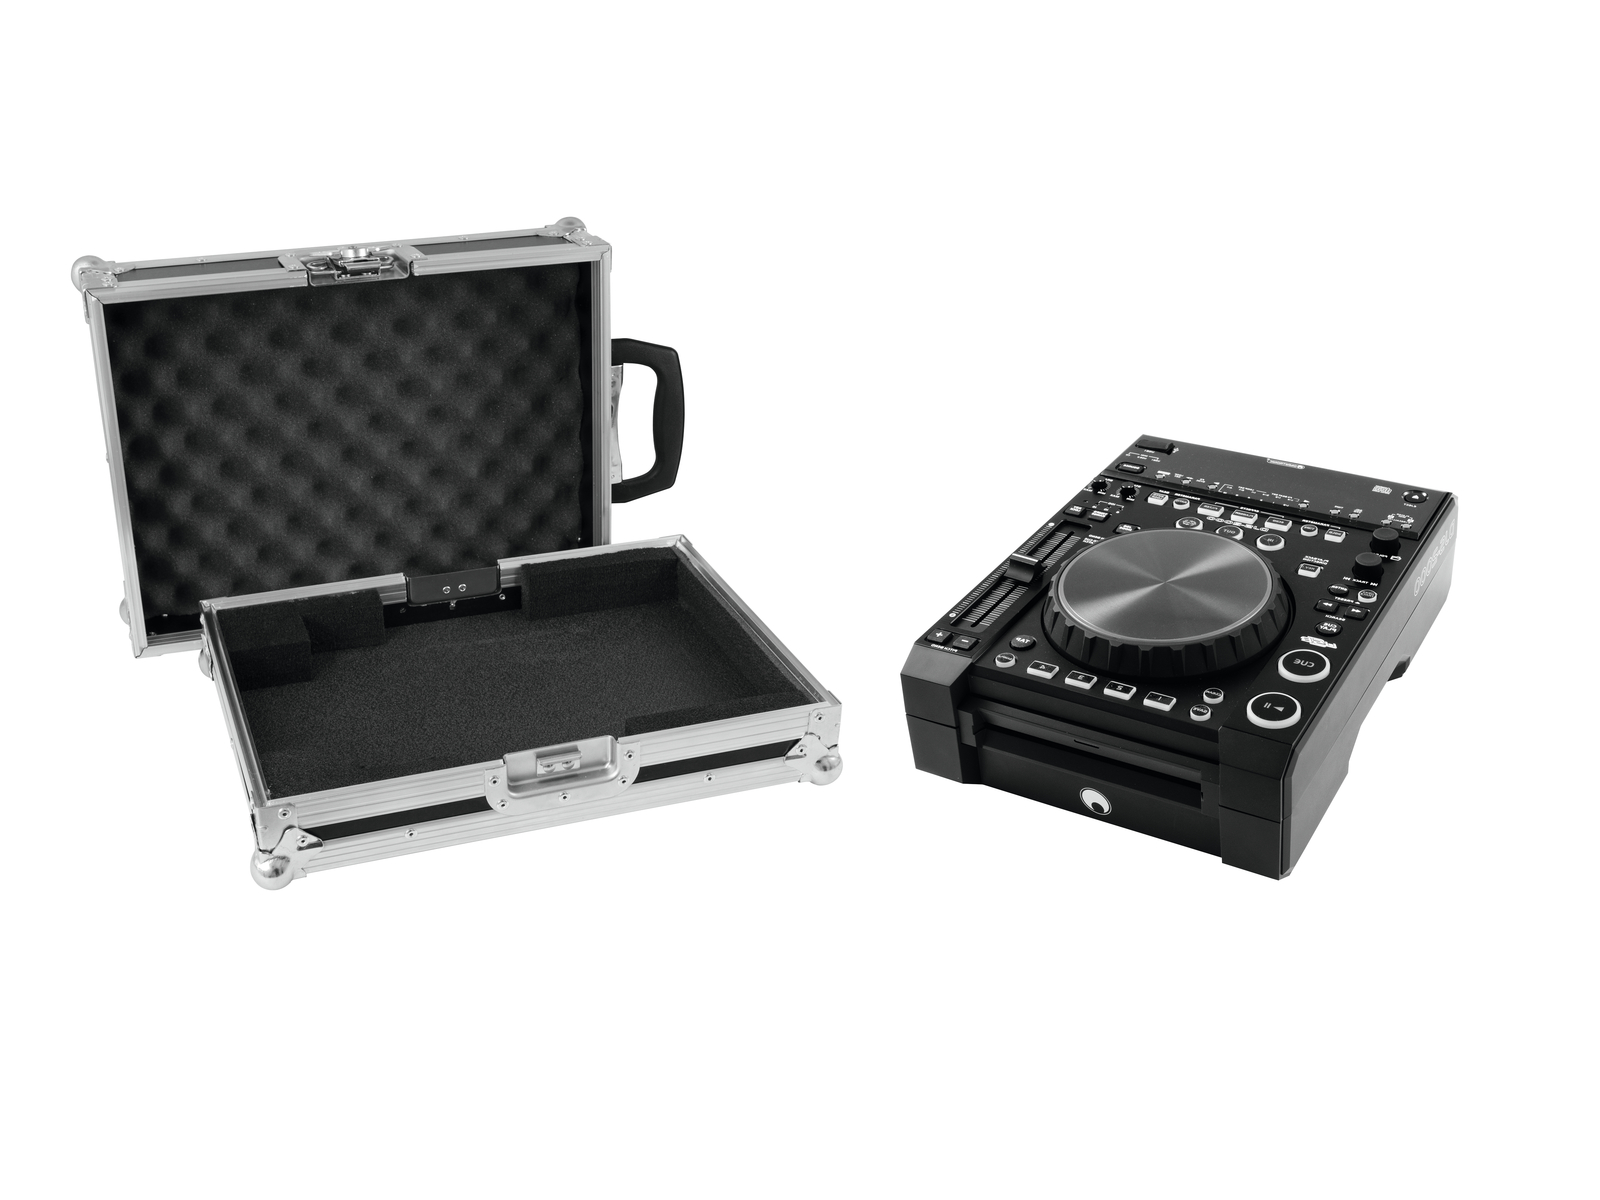 EUROLITE Set DJ-2000 DJ-Player + Caso